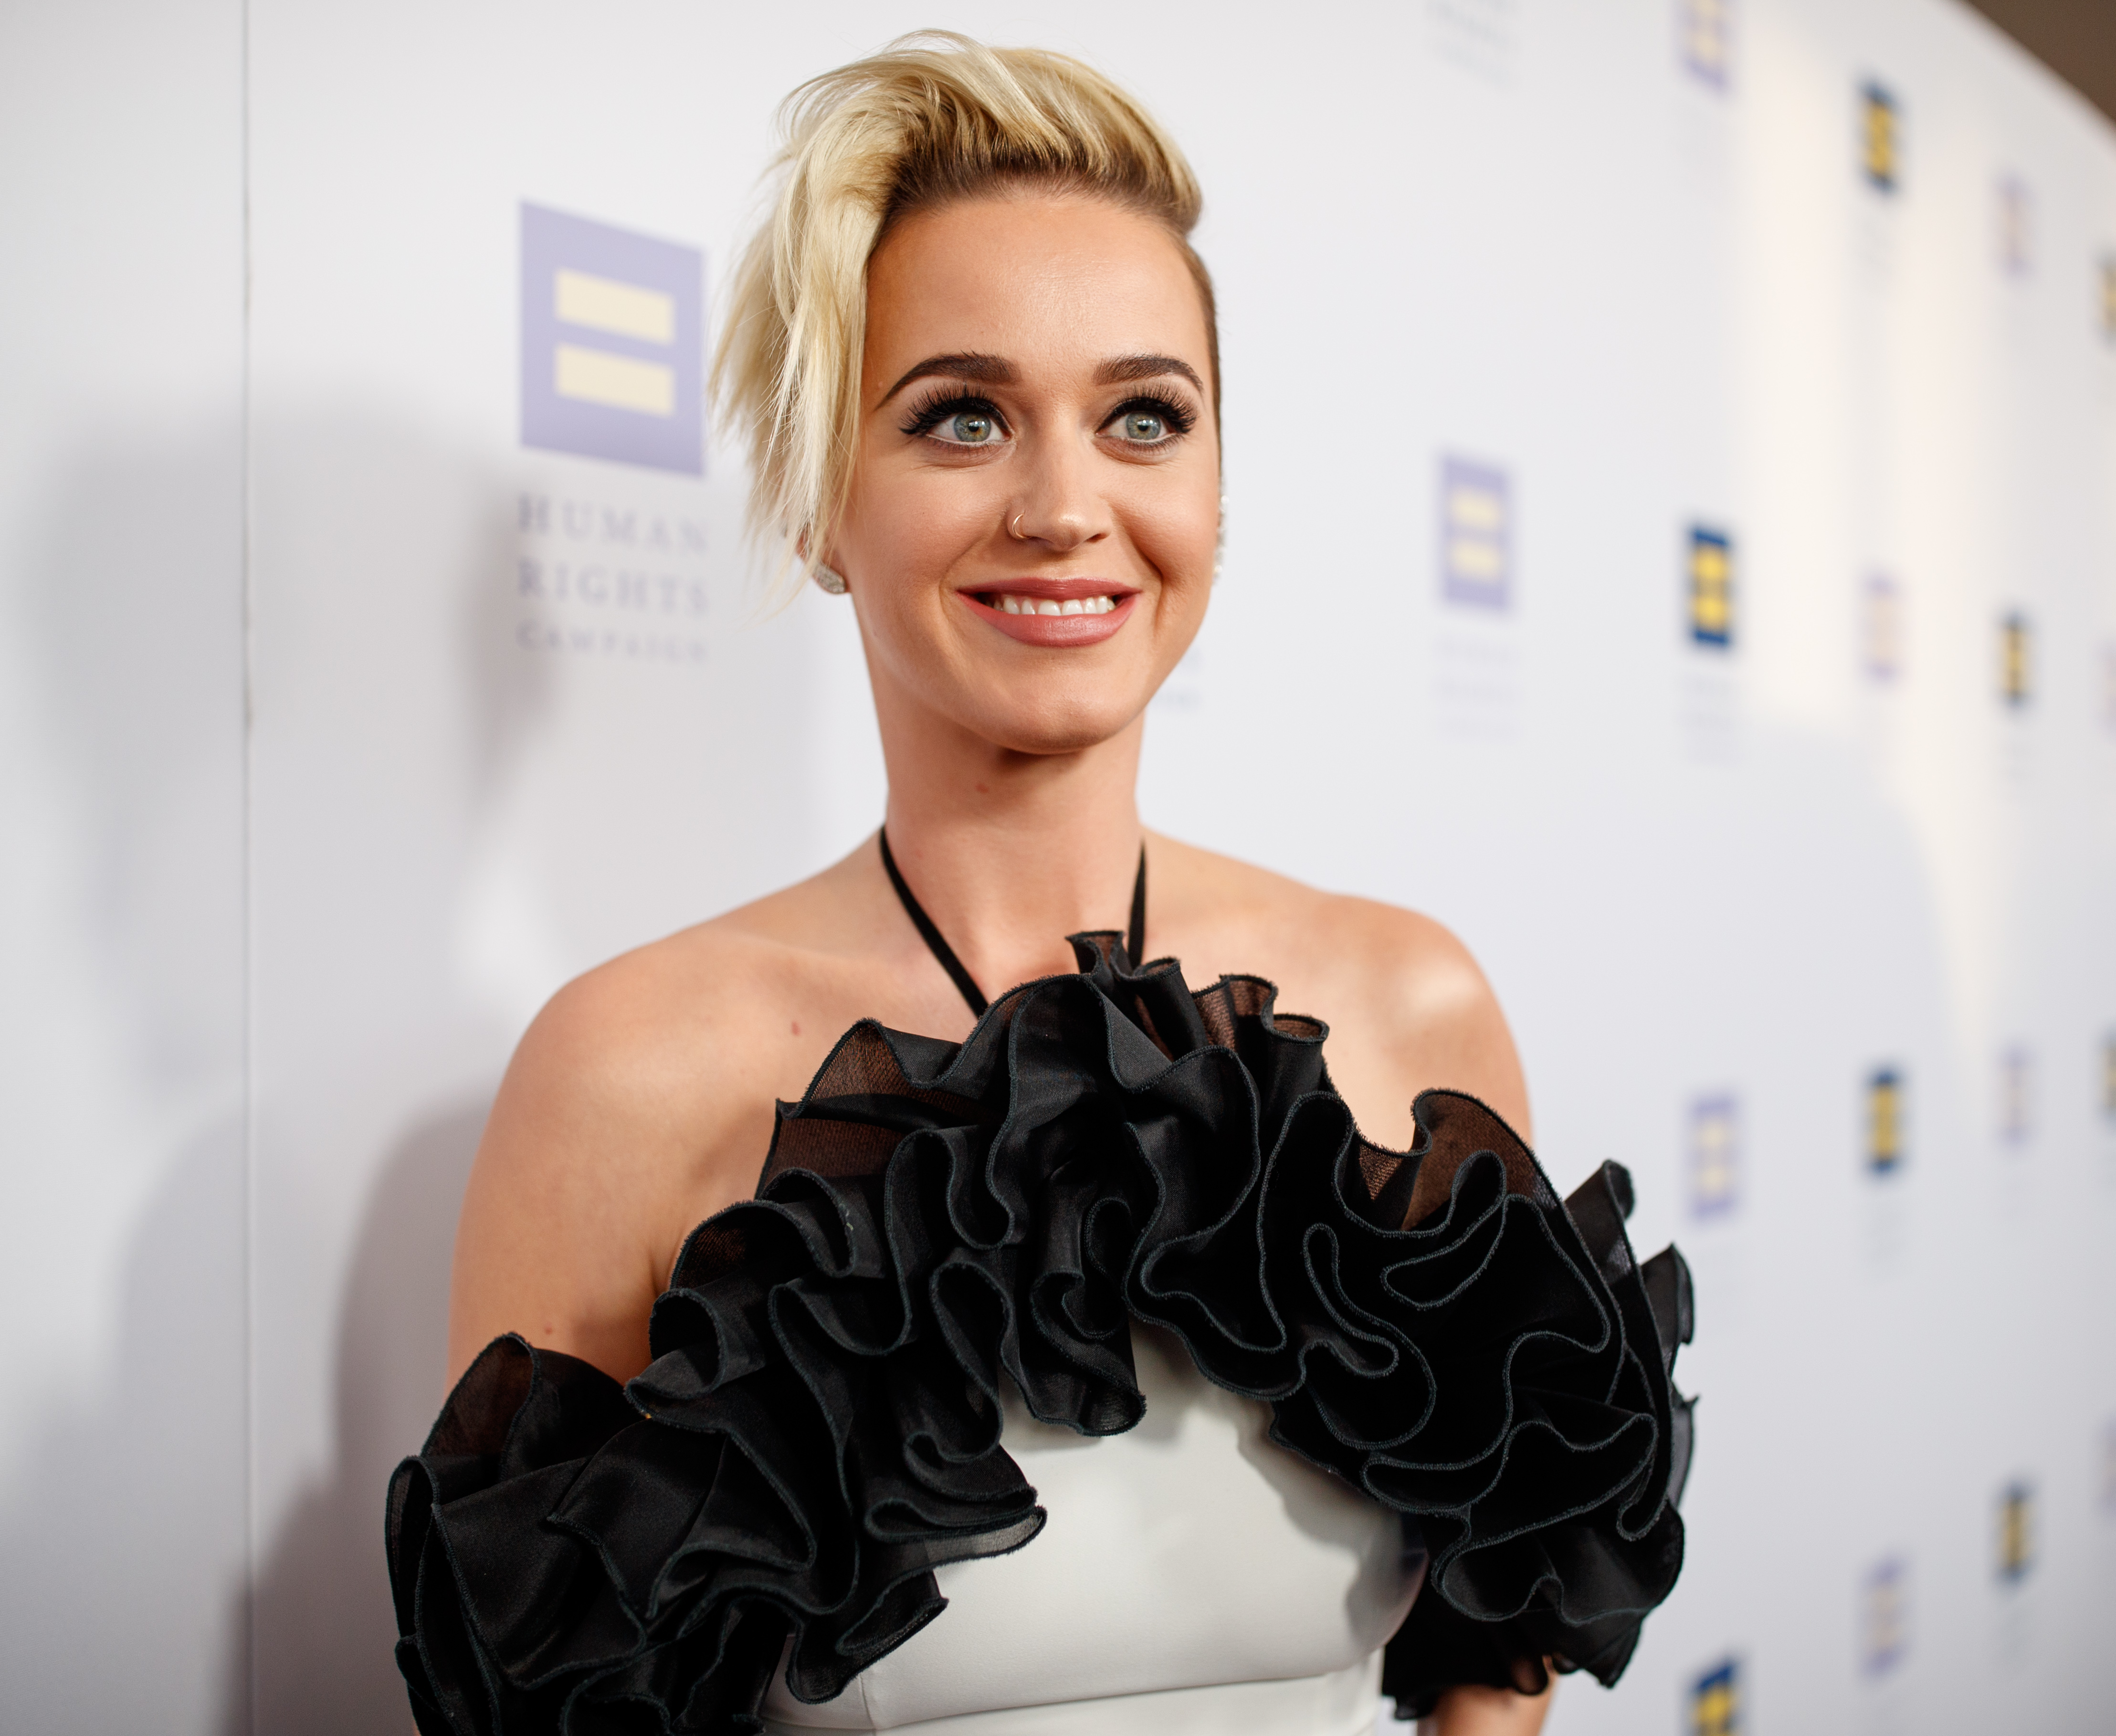 Commit error. katy perry hot sexy think